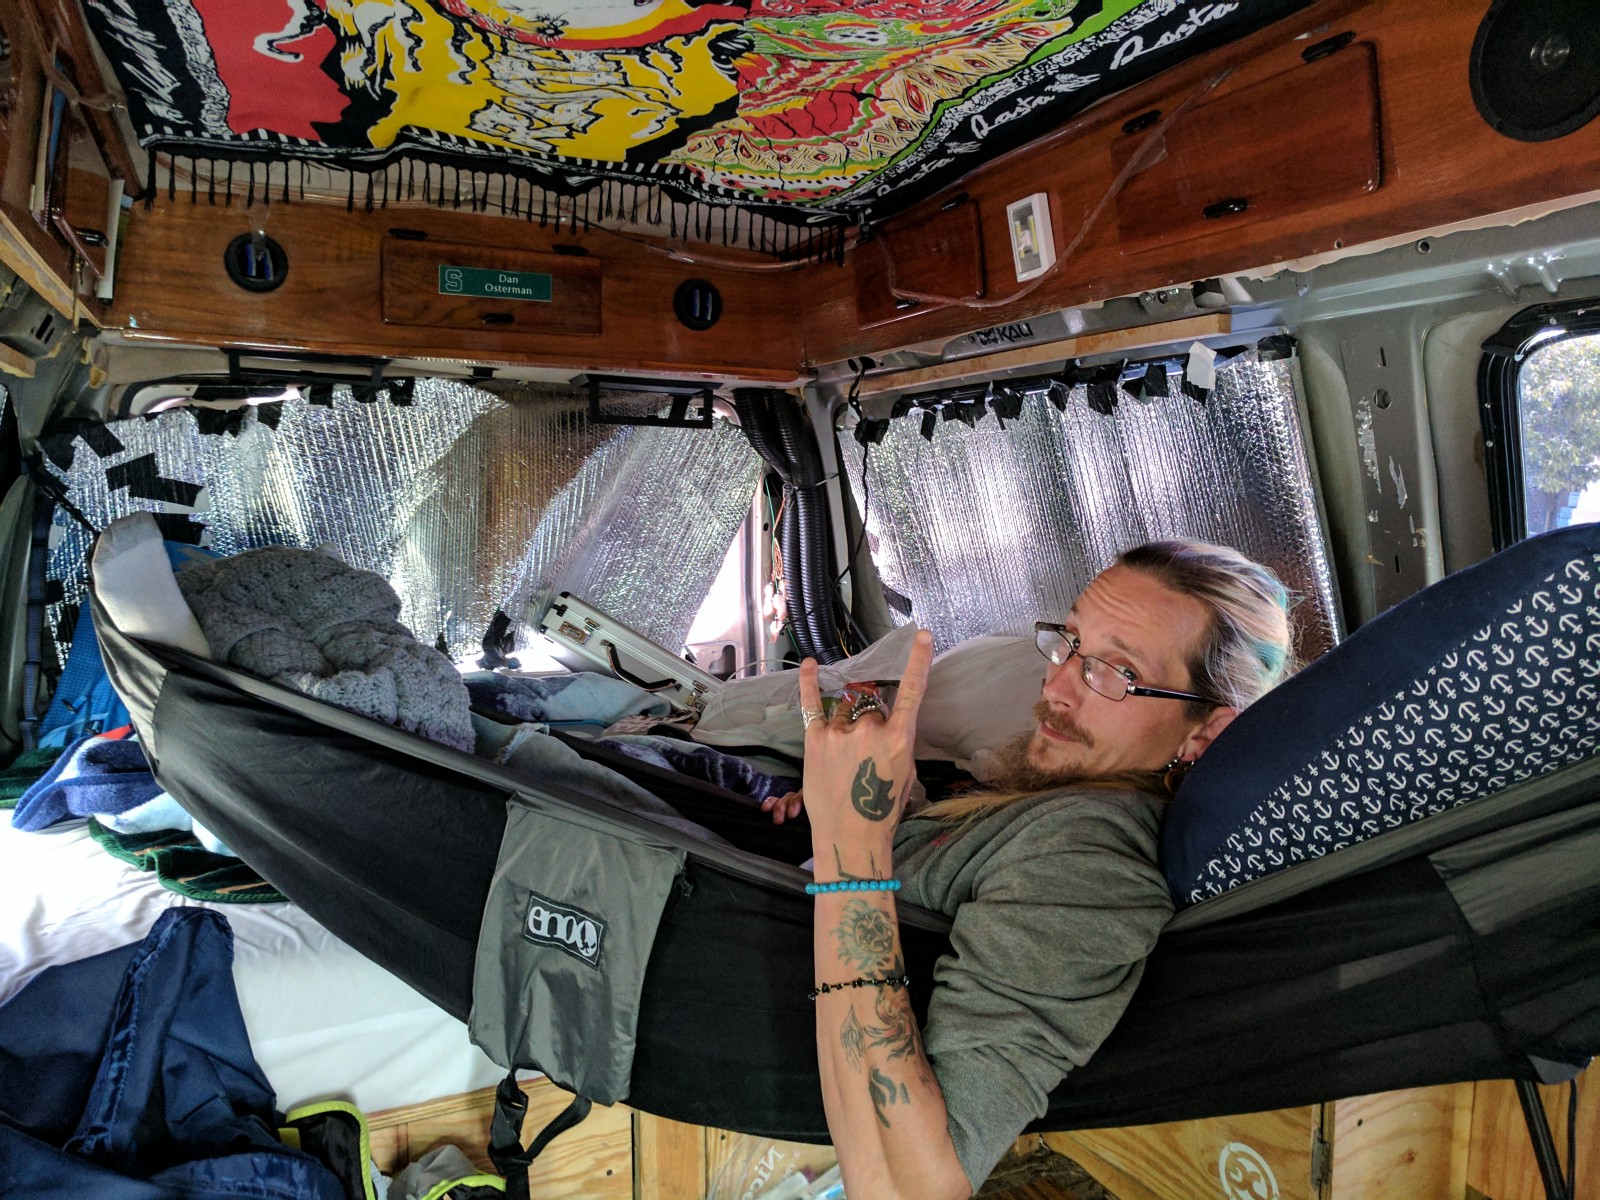 Stop Wasting Your Life How Living In A Van For 9 Months Has Changed The Trajectory Of My Journey